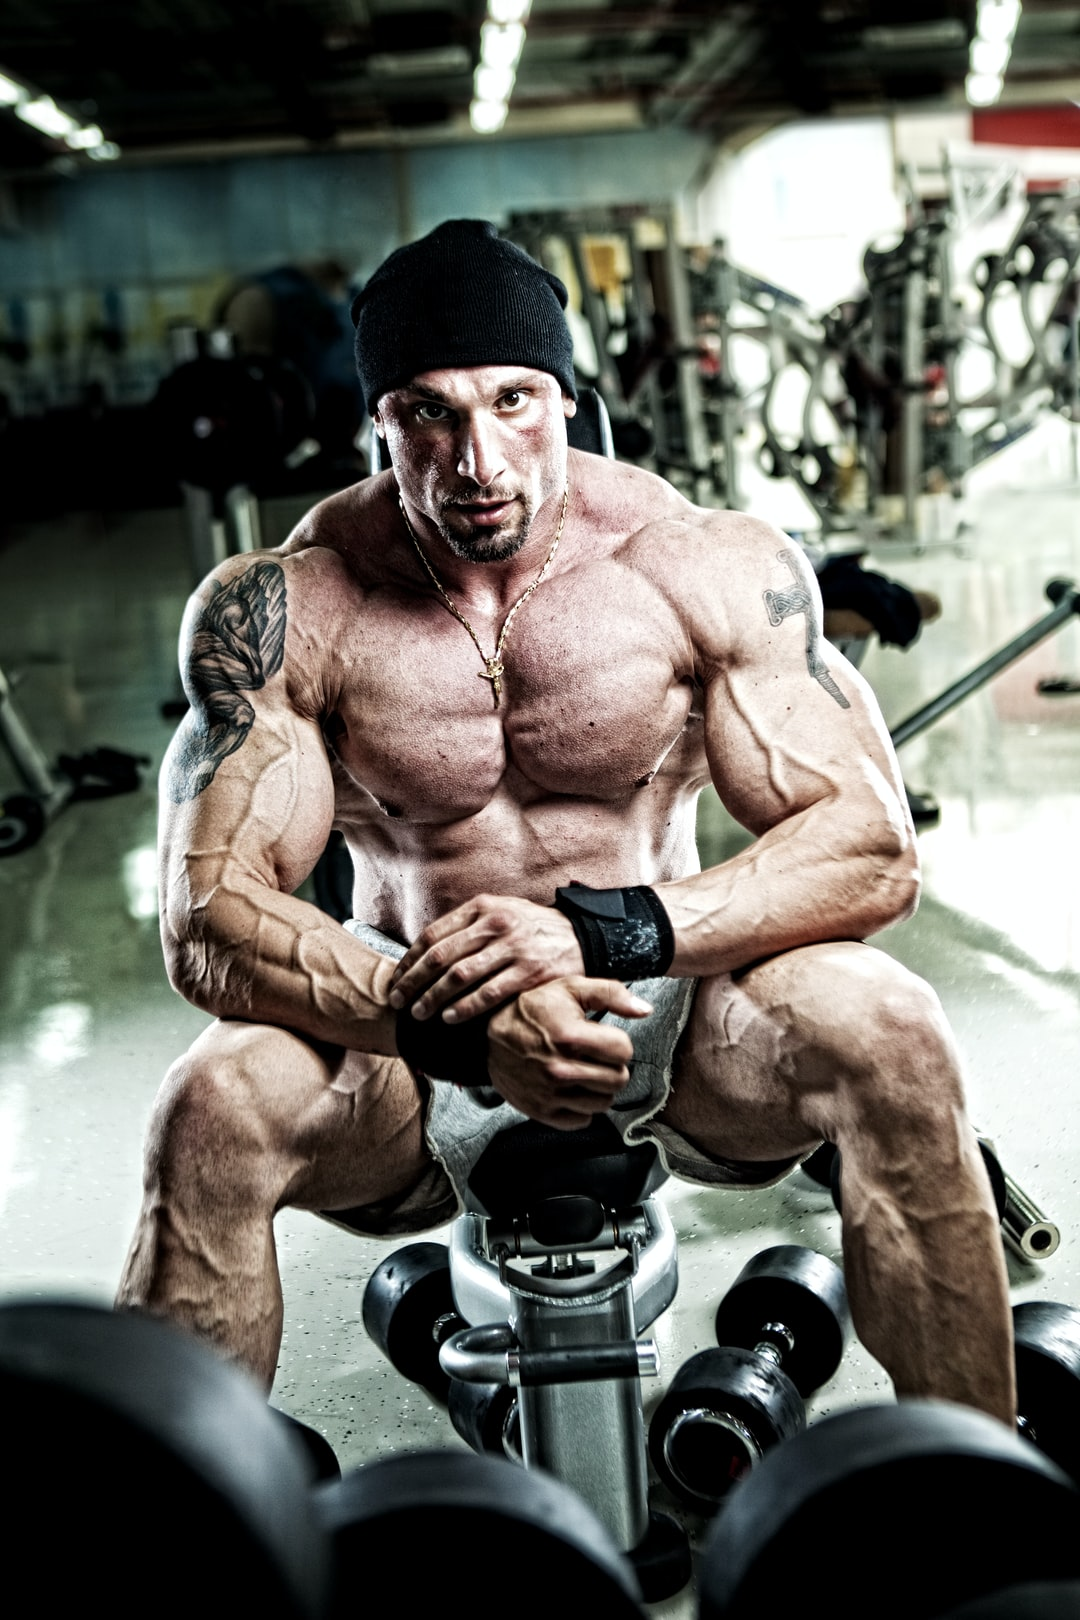 A muscular man in the gym with dumbbells